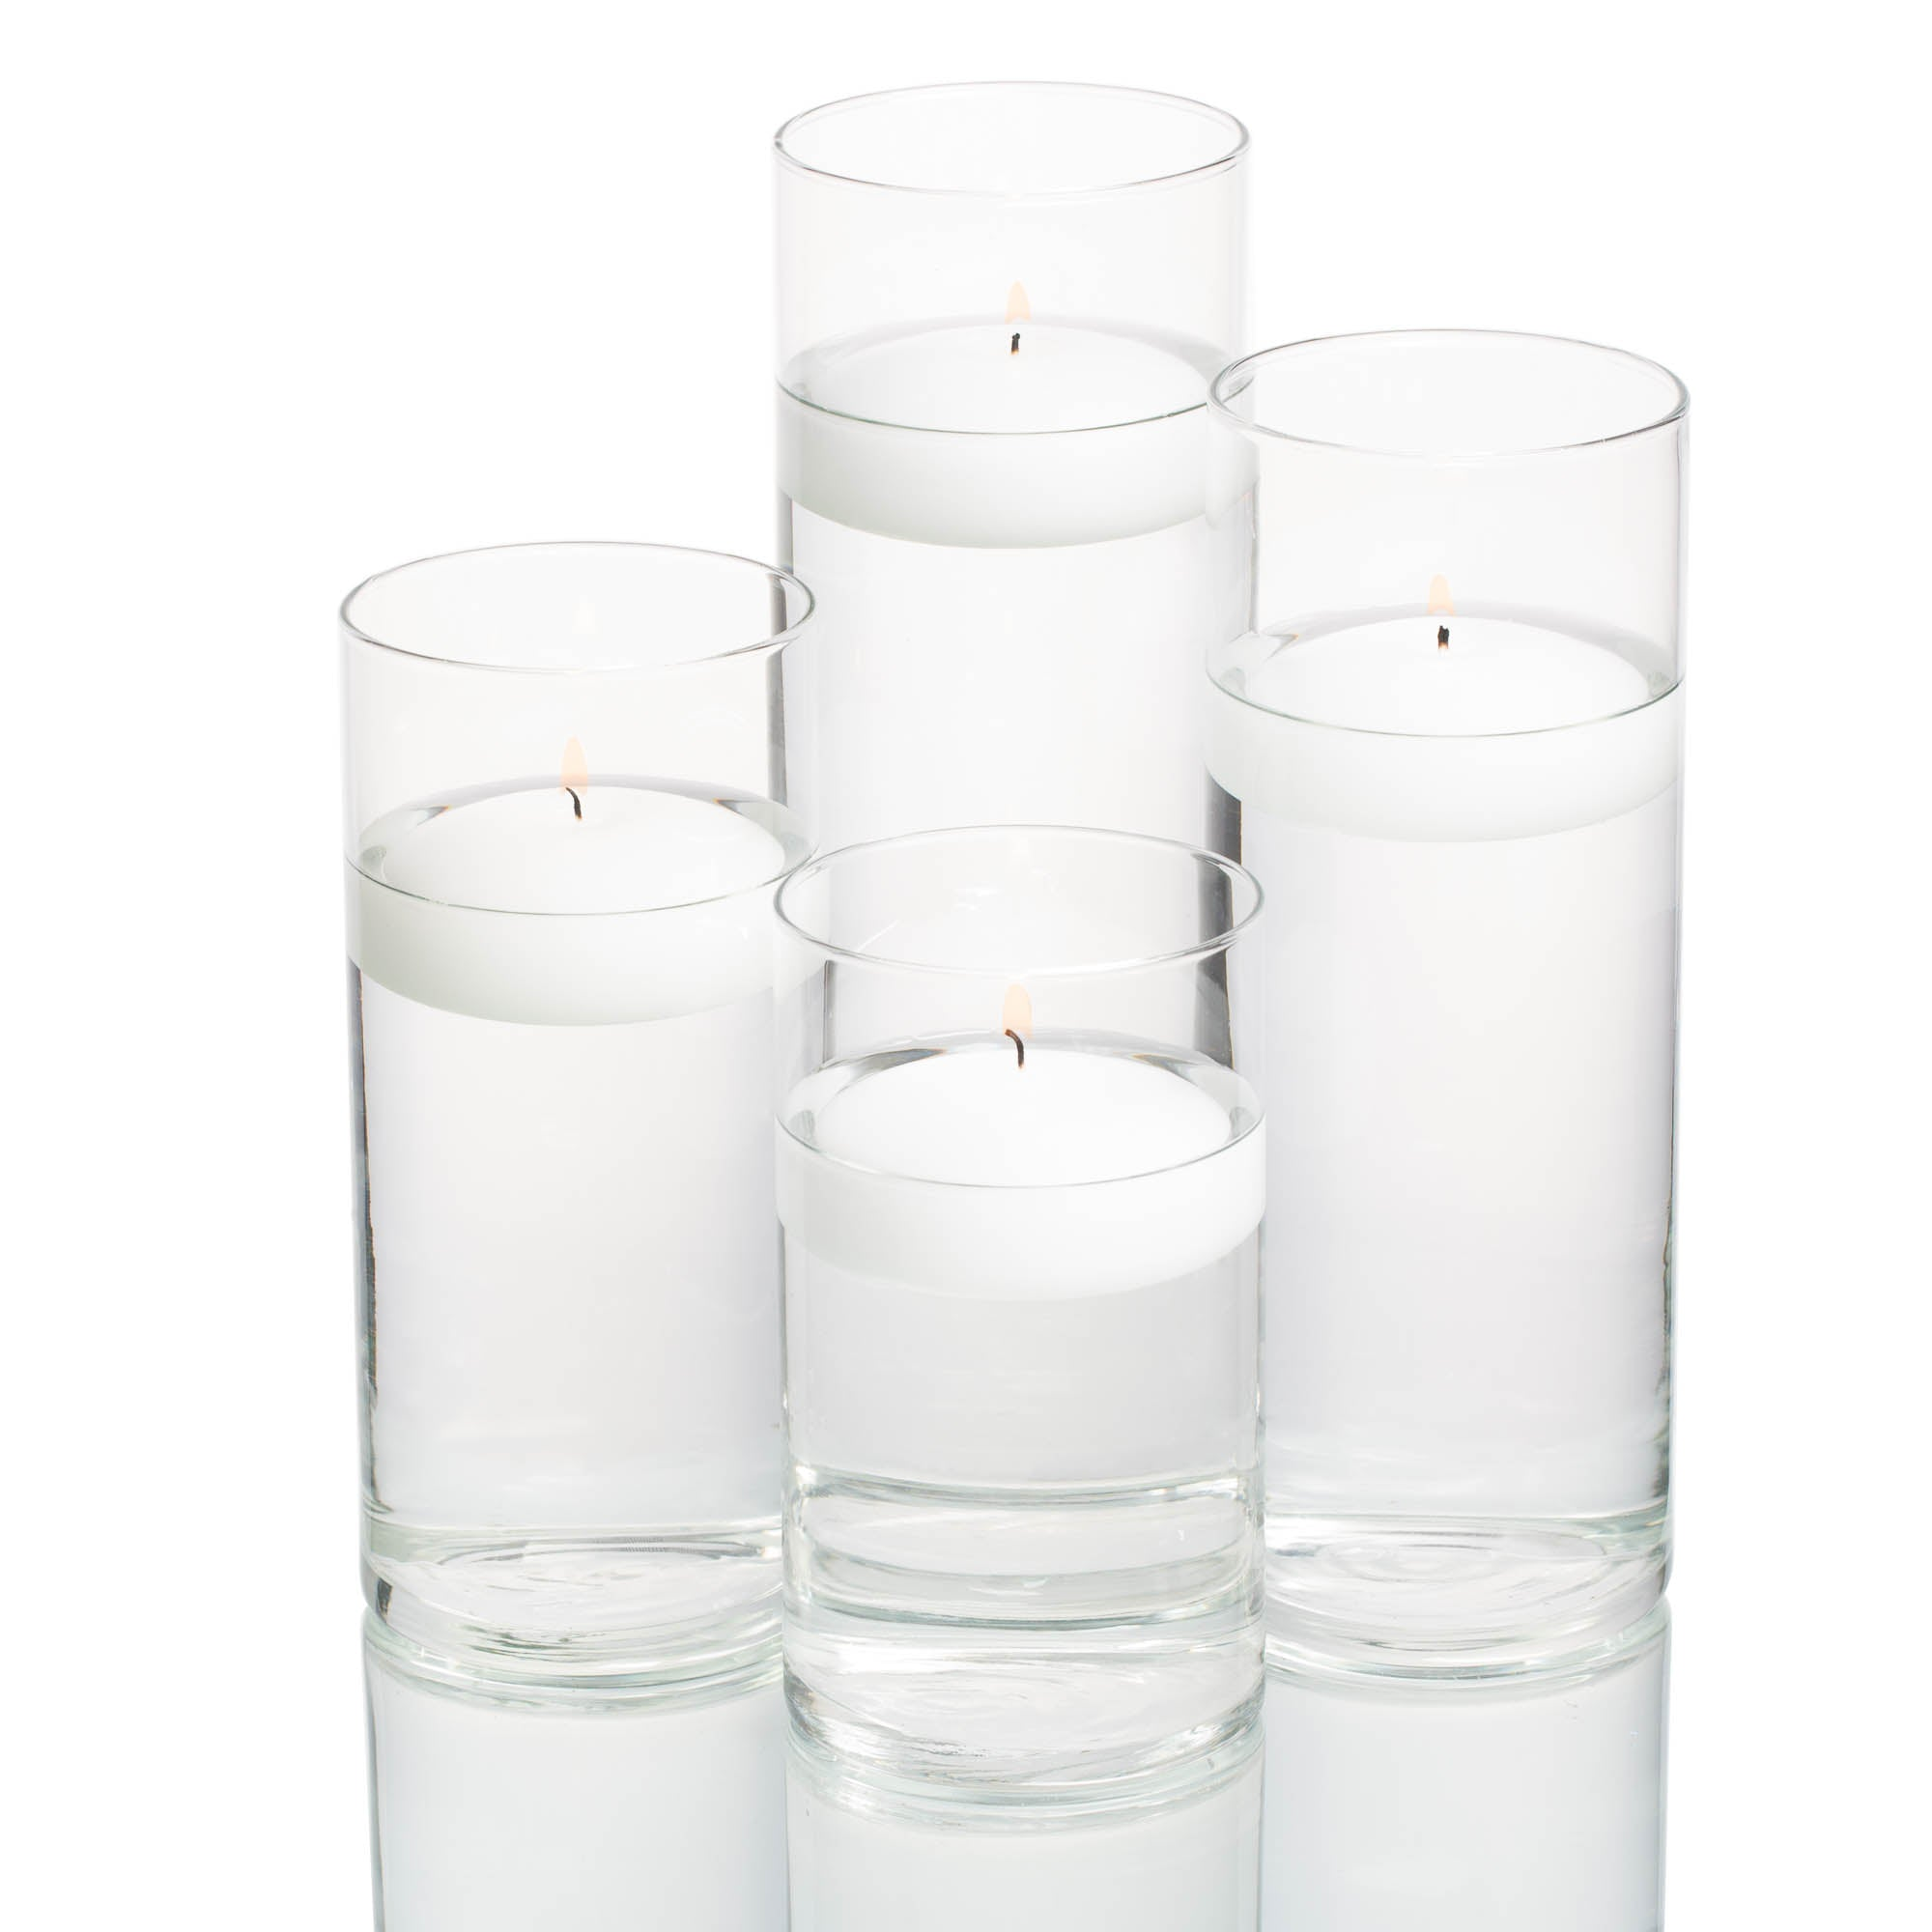 Richland Floating Candles & Eastland Cylinder Holders Set of 4